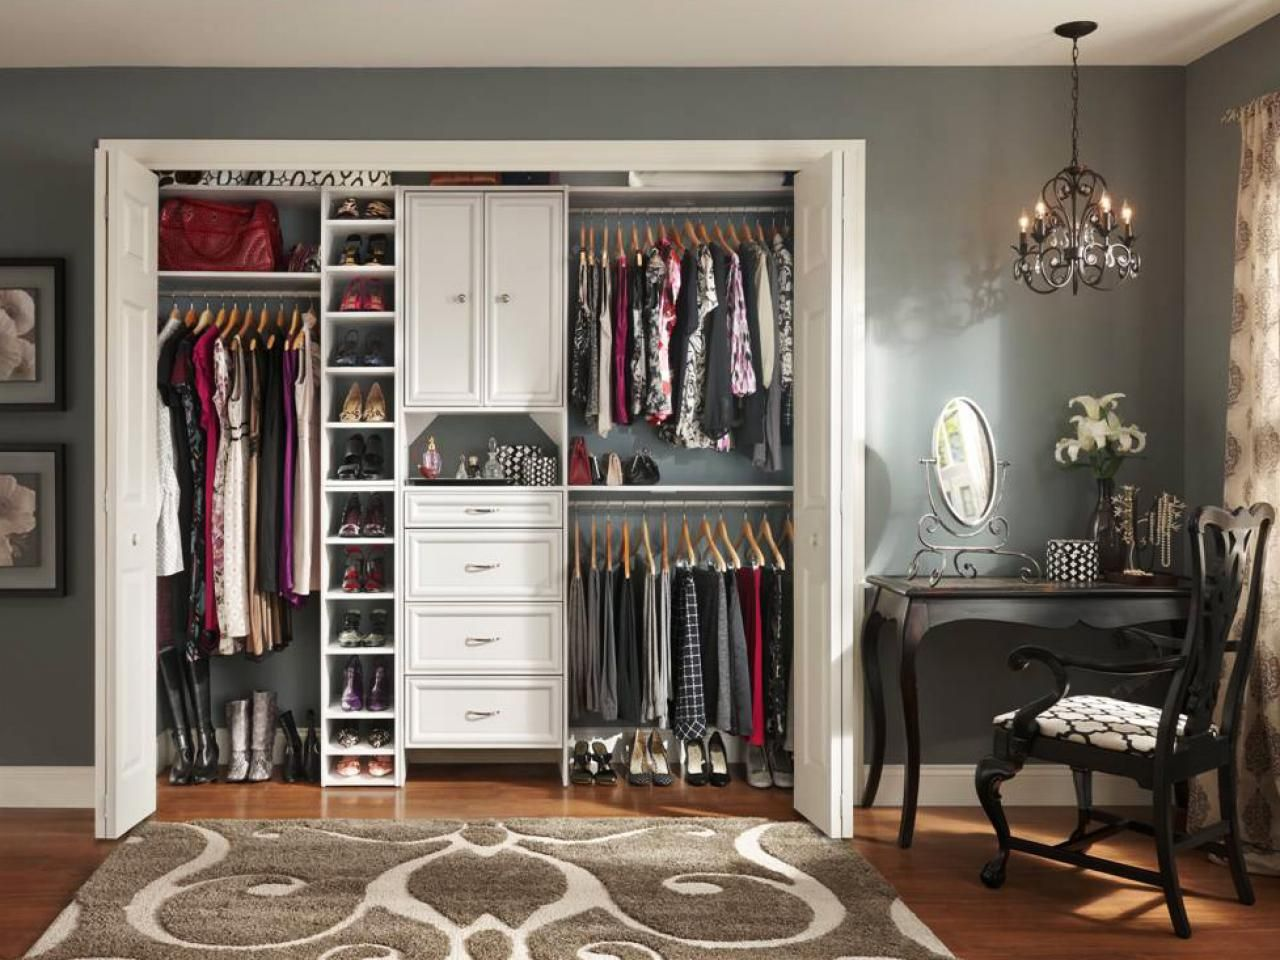 Simple small closet organization tips smart home decorating ideas - Small Closet Organization Ideas Pictures Options Tips